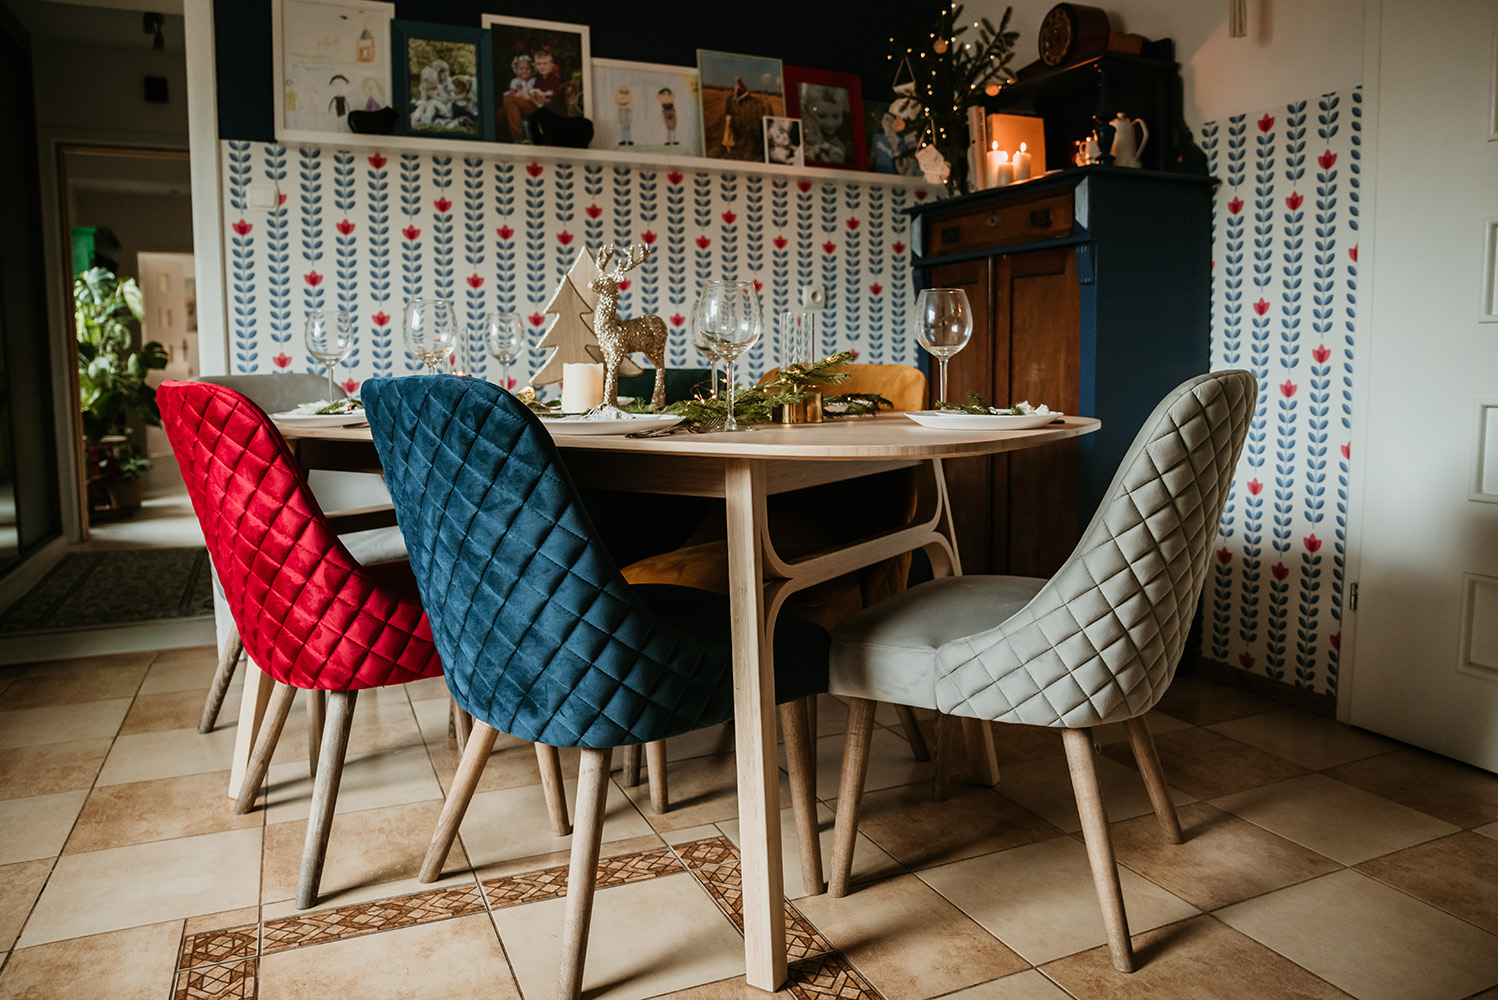 Albion chairs with stitching